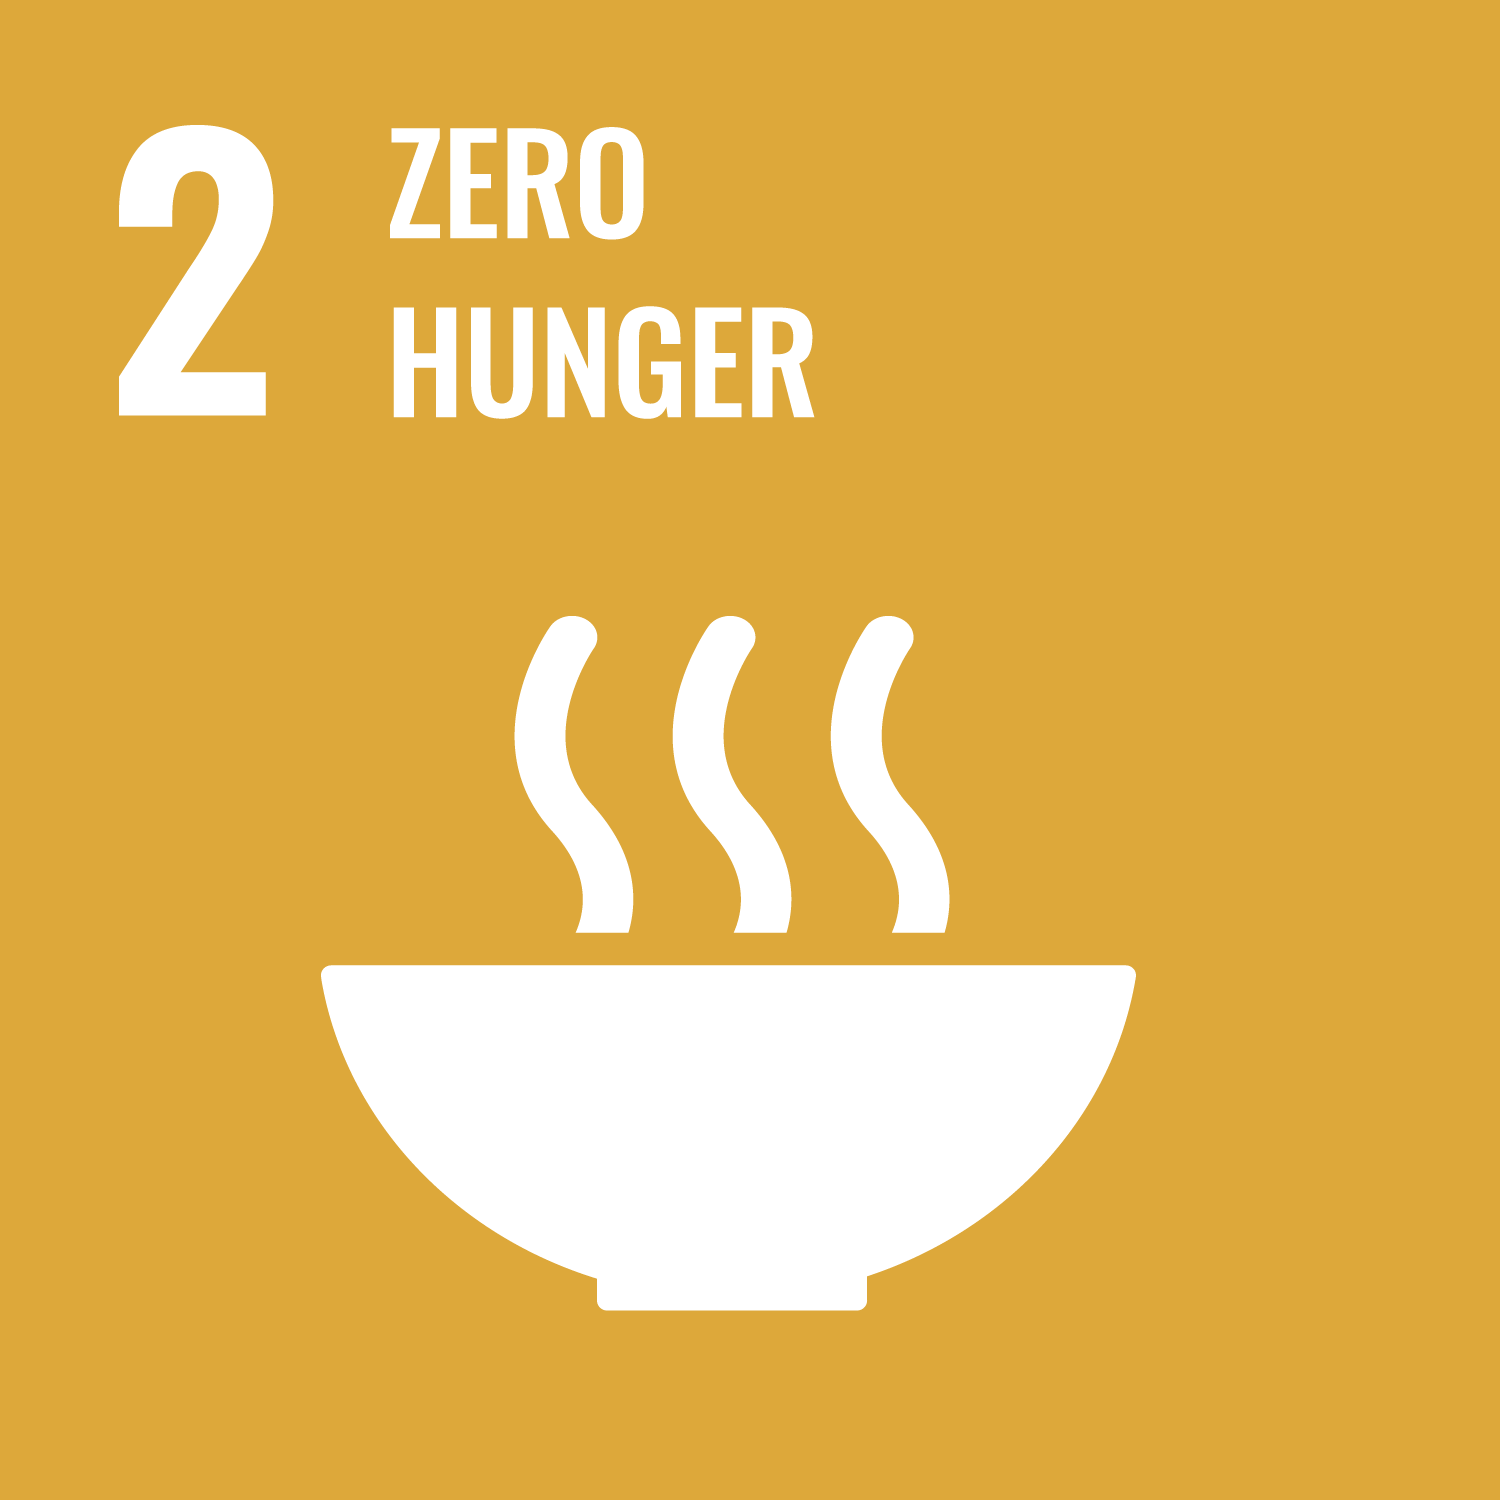 SDG 2 - Quiz (Coming soon!)